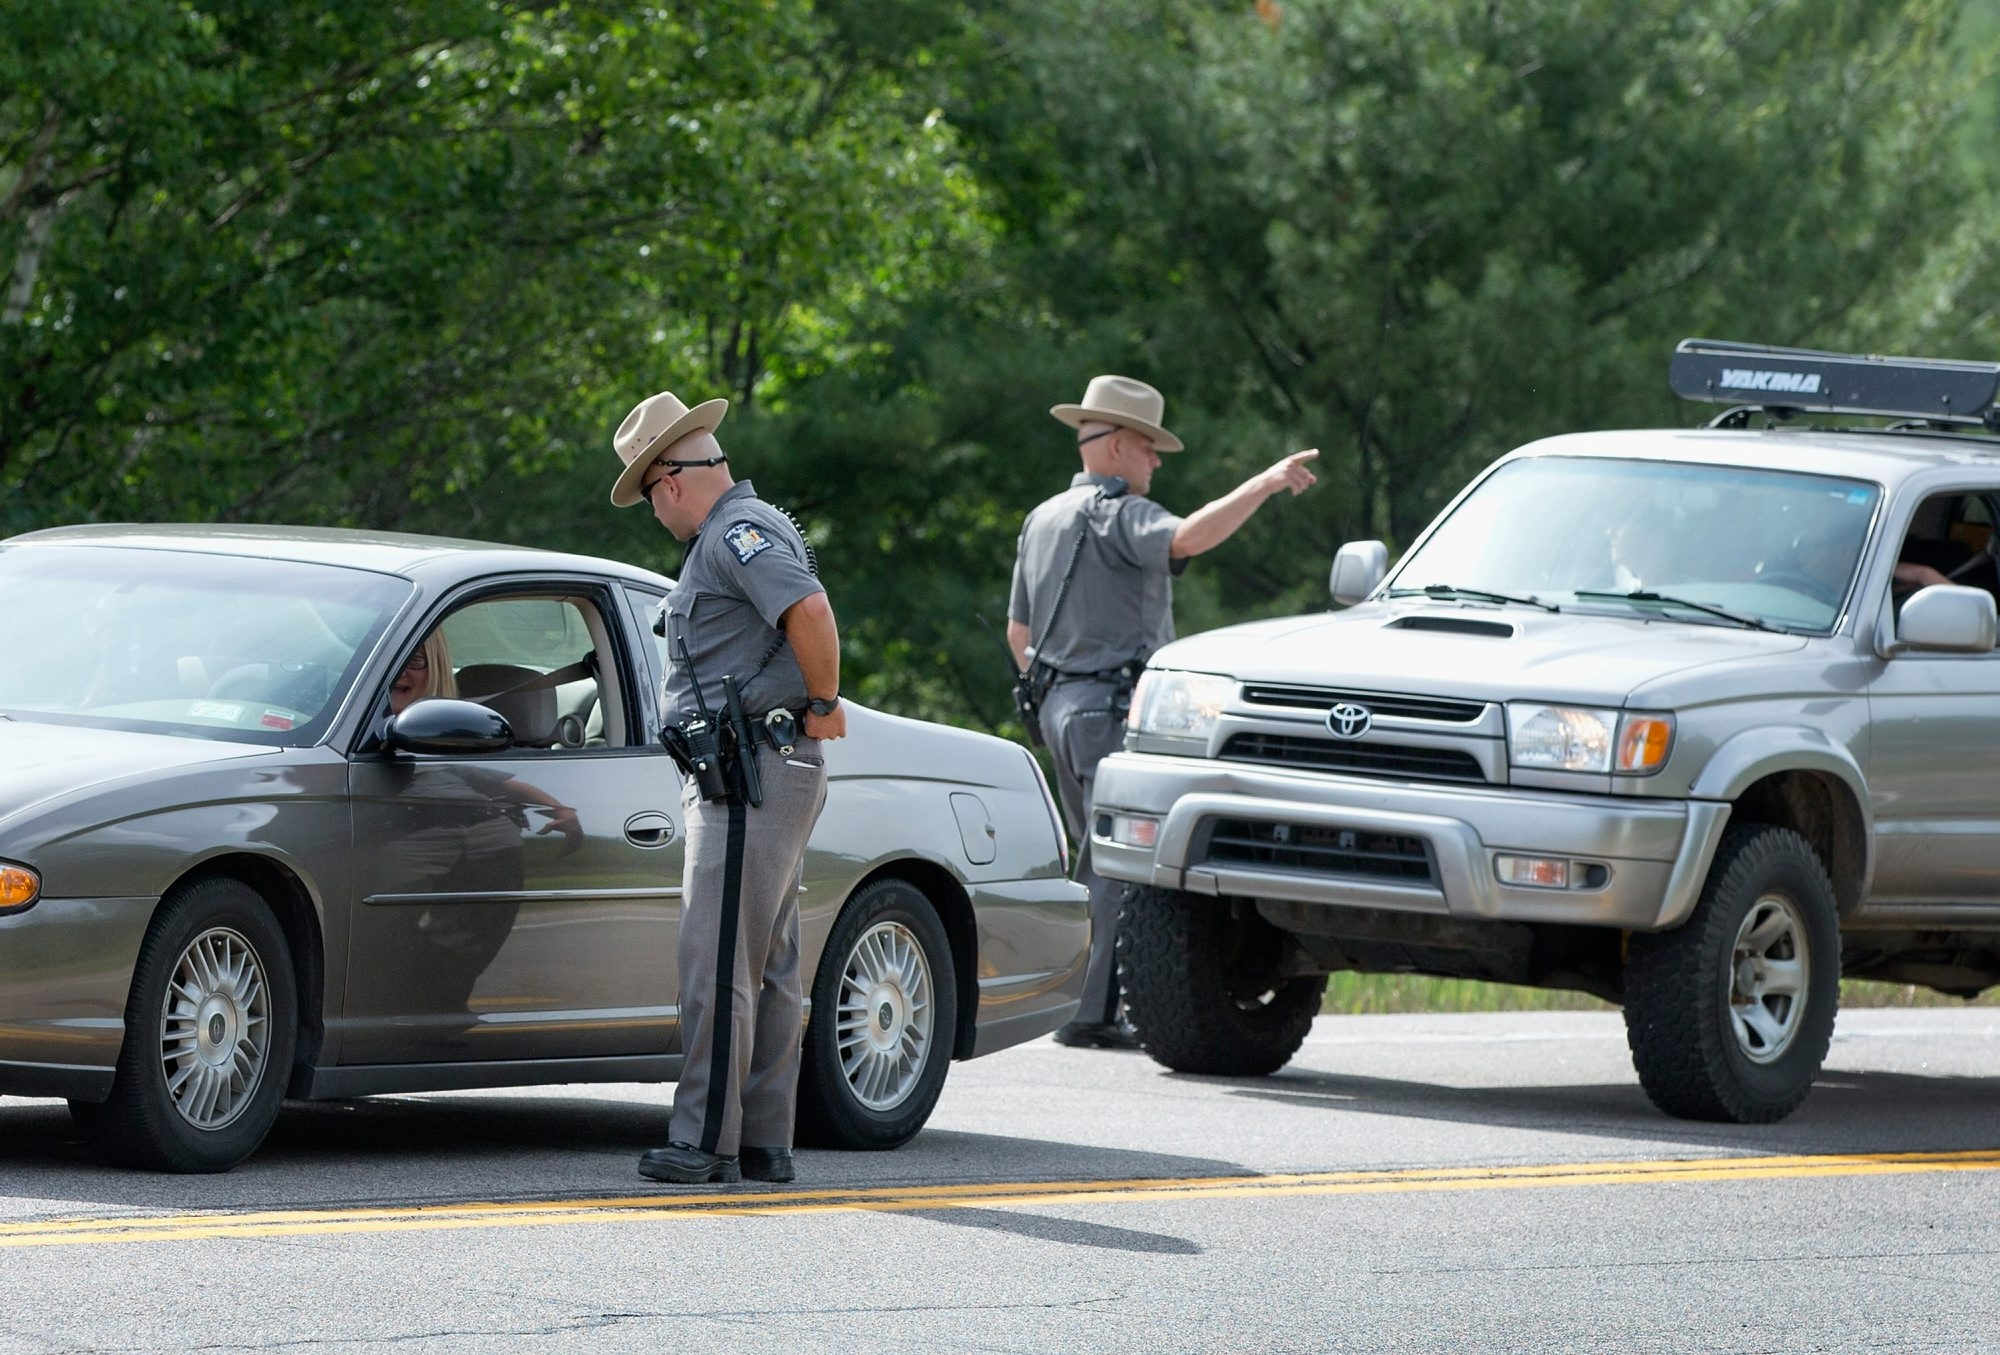 New York State Police officers man a roadblock along Highway 30 as the manhunt for escaped convict David Sweat continues Saturday near Malone.